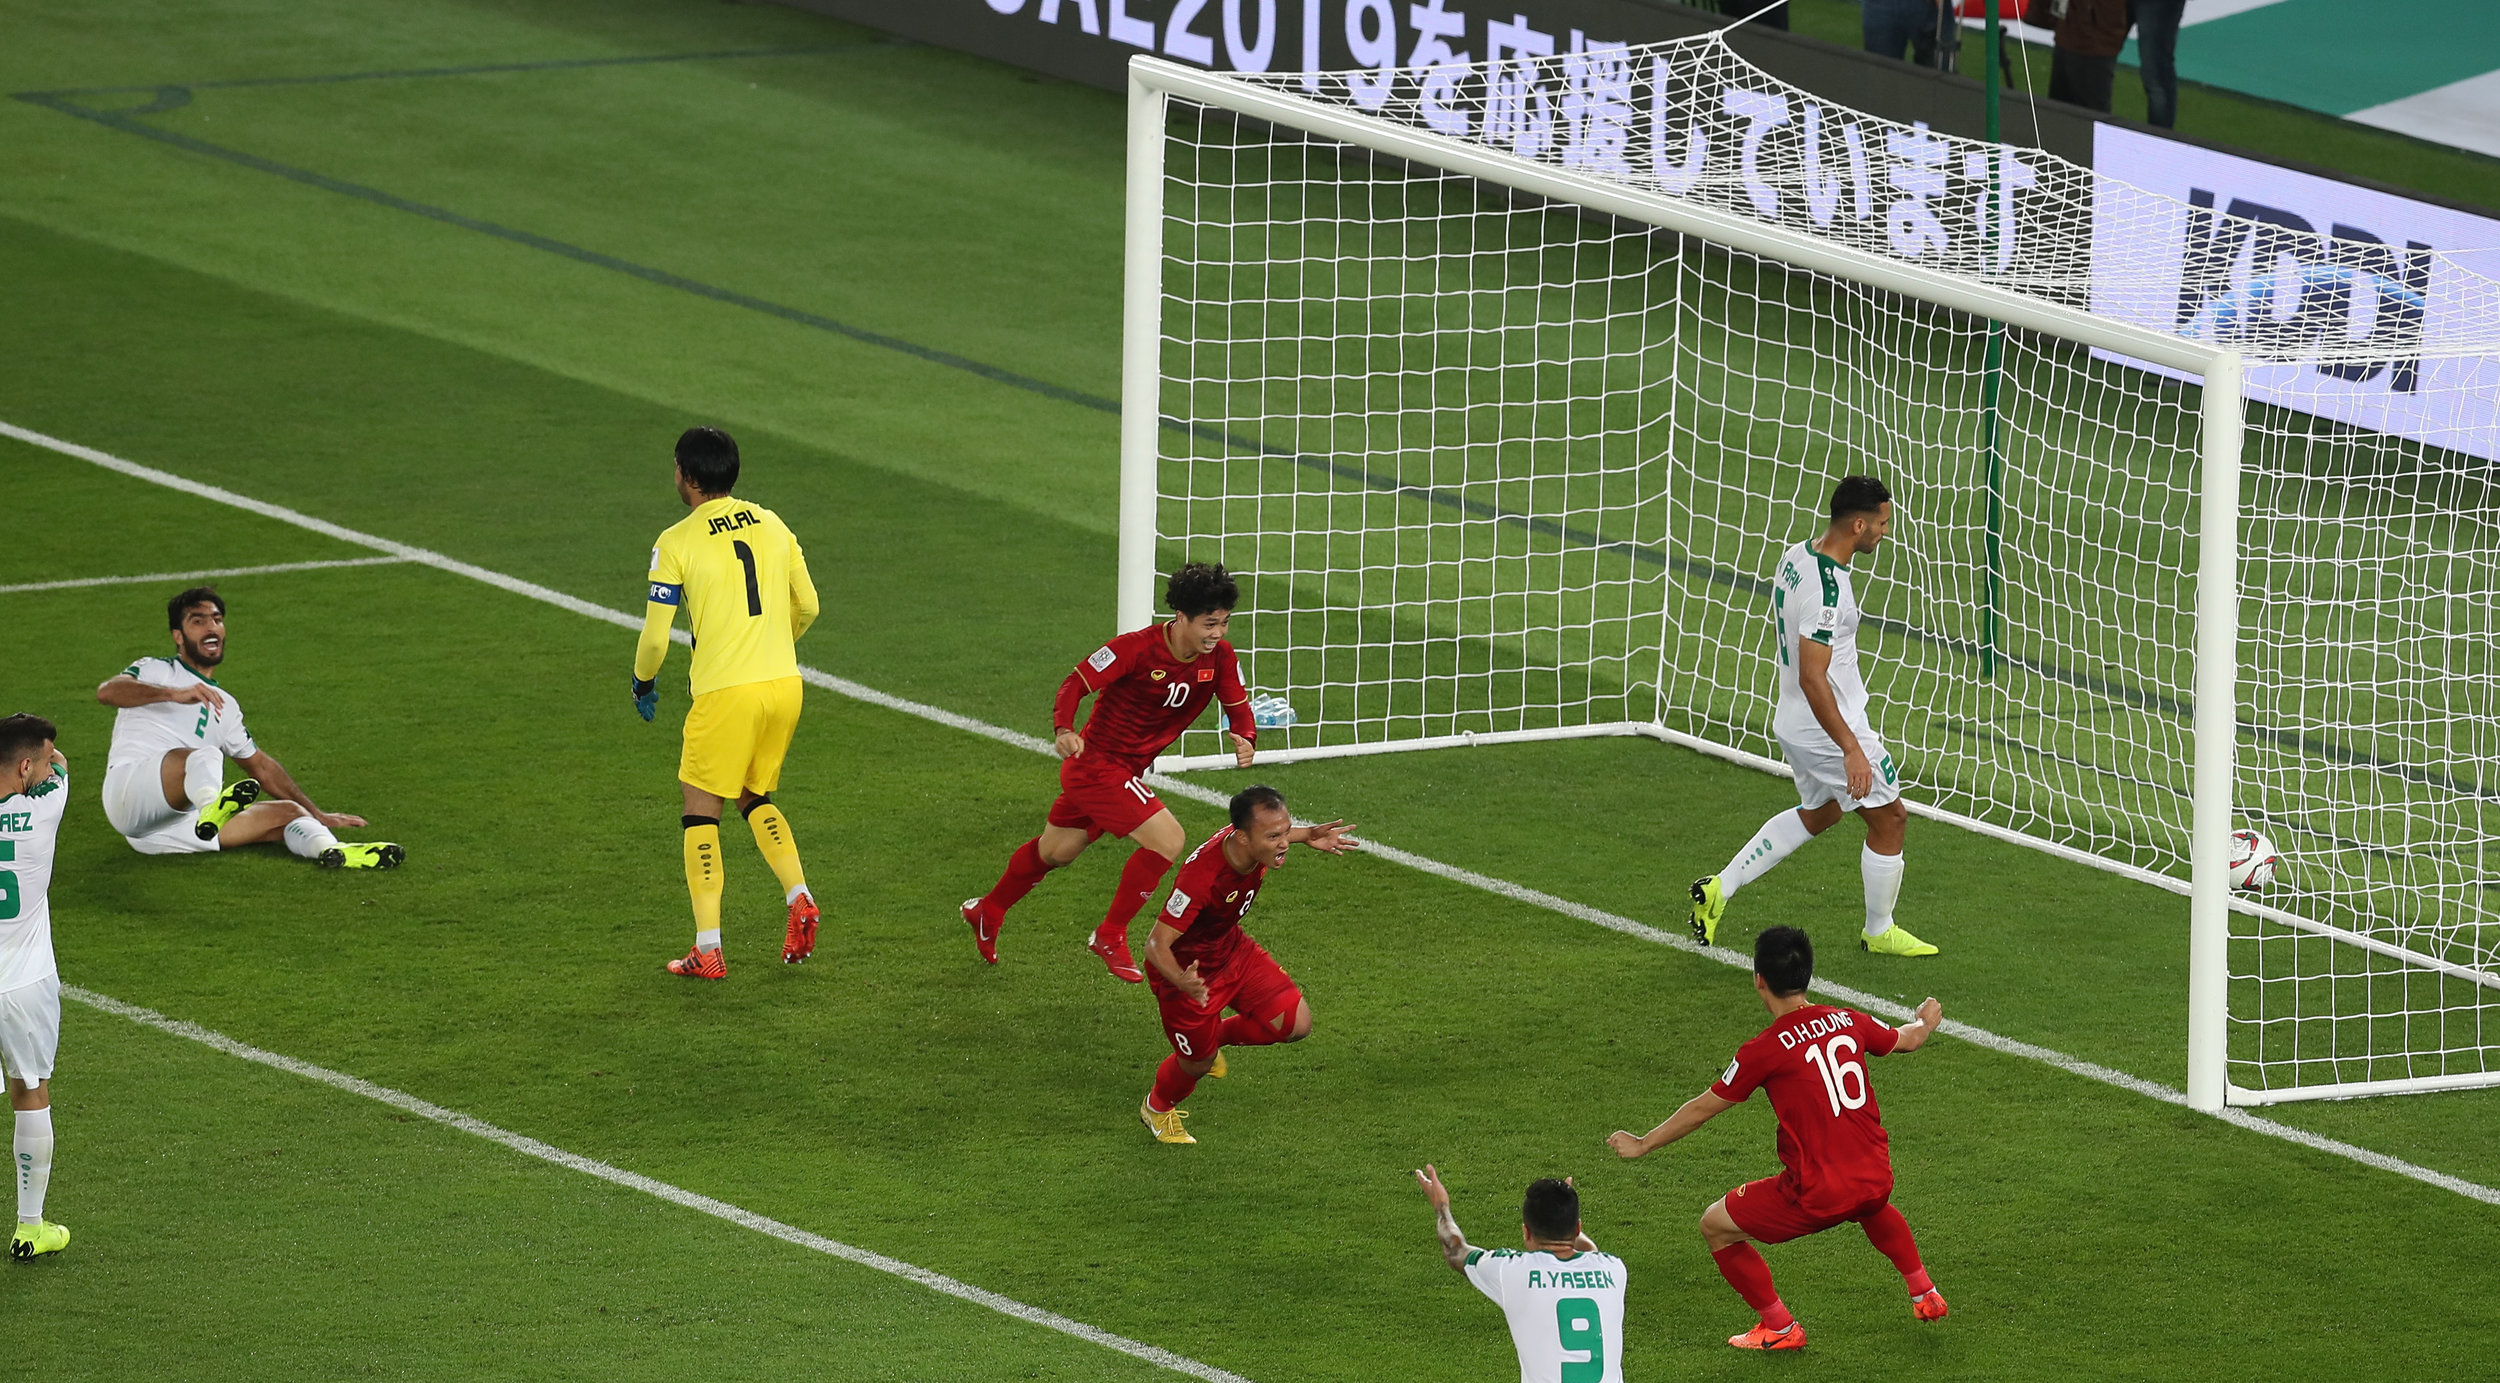 Nguyen Cong Phuong celebrating the second goal, an impressive performance (2019 Asian Football Confederation (AFC))